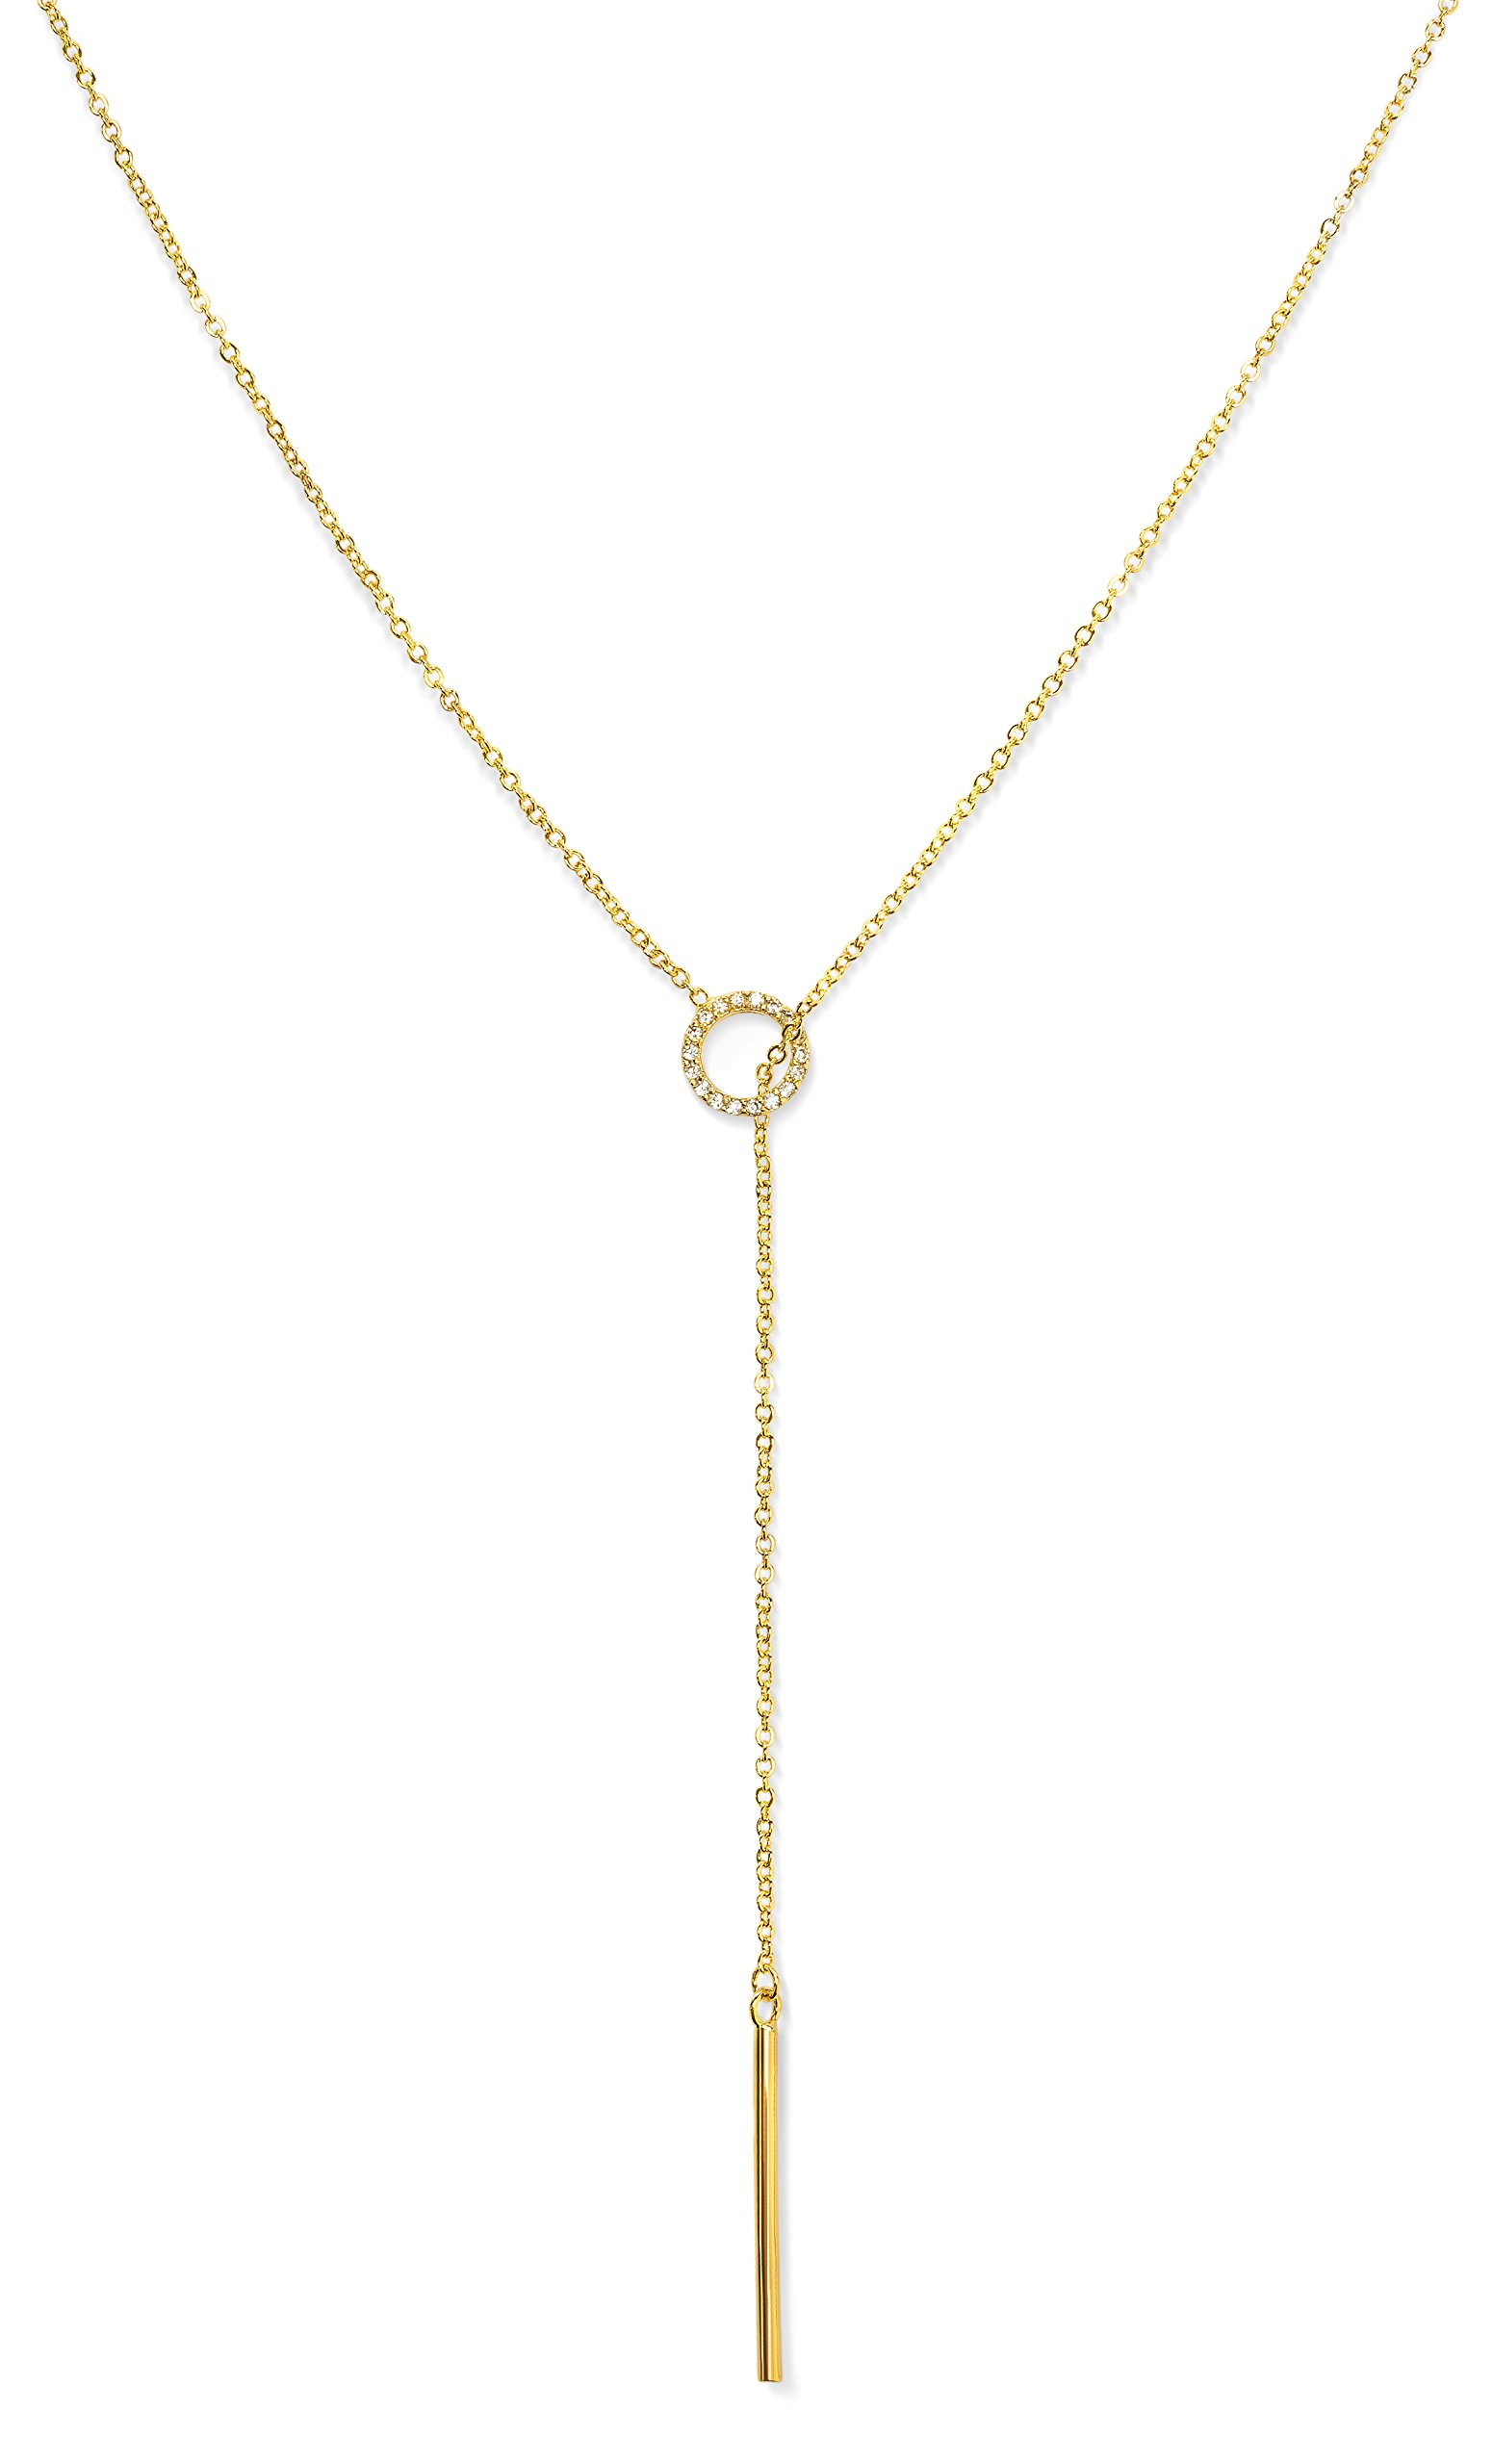 Benevolence LA Gold Necklace Lariat Drop Y Vertical Bar: Pendant Tiny Chic 14k Gold Diamond Shaped Open Circle Cubic Zirconia Looped Long Chain for Women by Candace Cameron